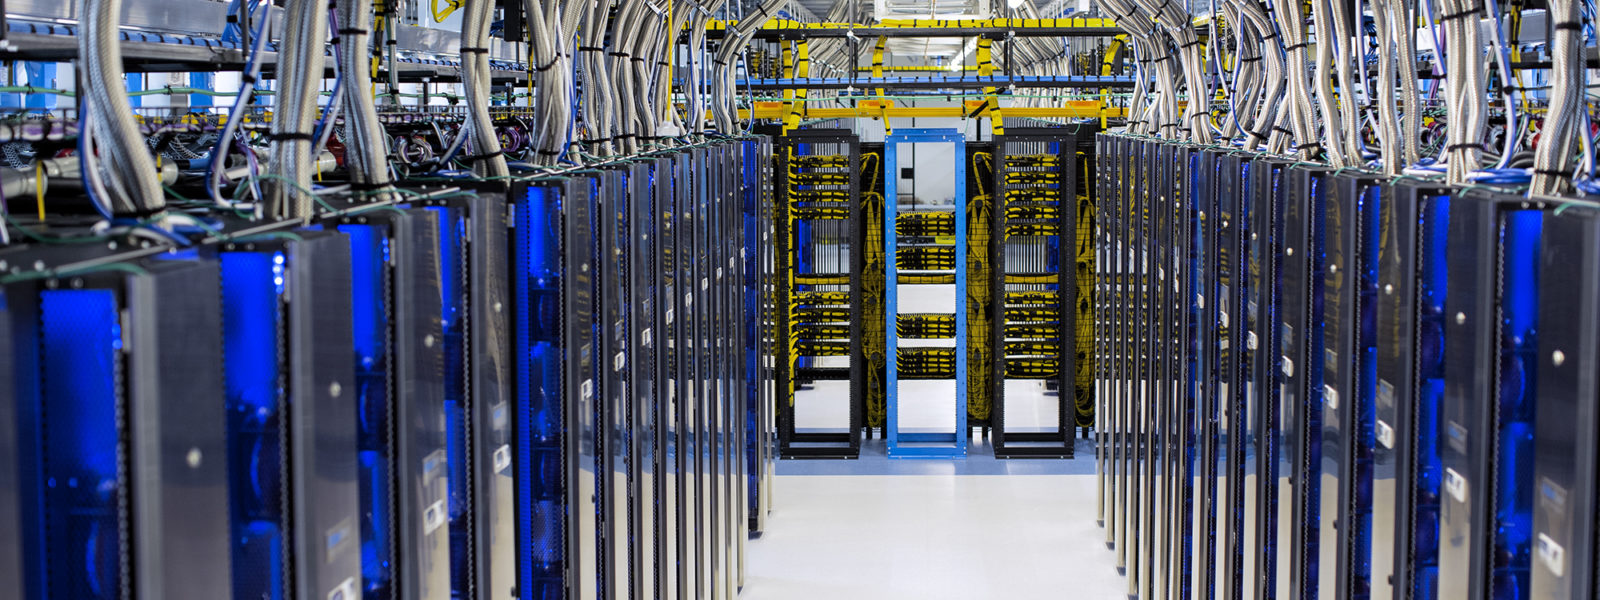 Real people. IT professionals build and maintain the LinkedIn server farm which operates on 100% renewable energy. Power is hydro-generated and managed efficiently on-site with minimum new draw from external grid. State-of-the-art facility uses eco-friendly solutions such as using reclaimed water to cool the data center.